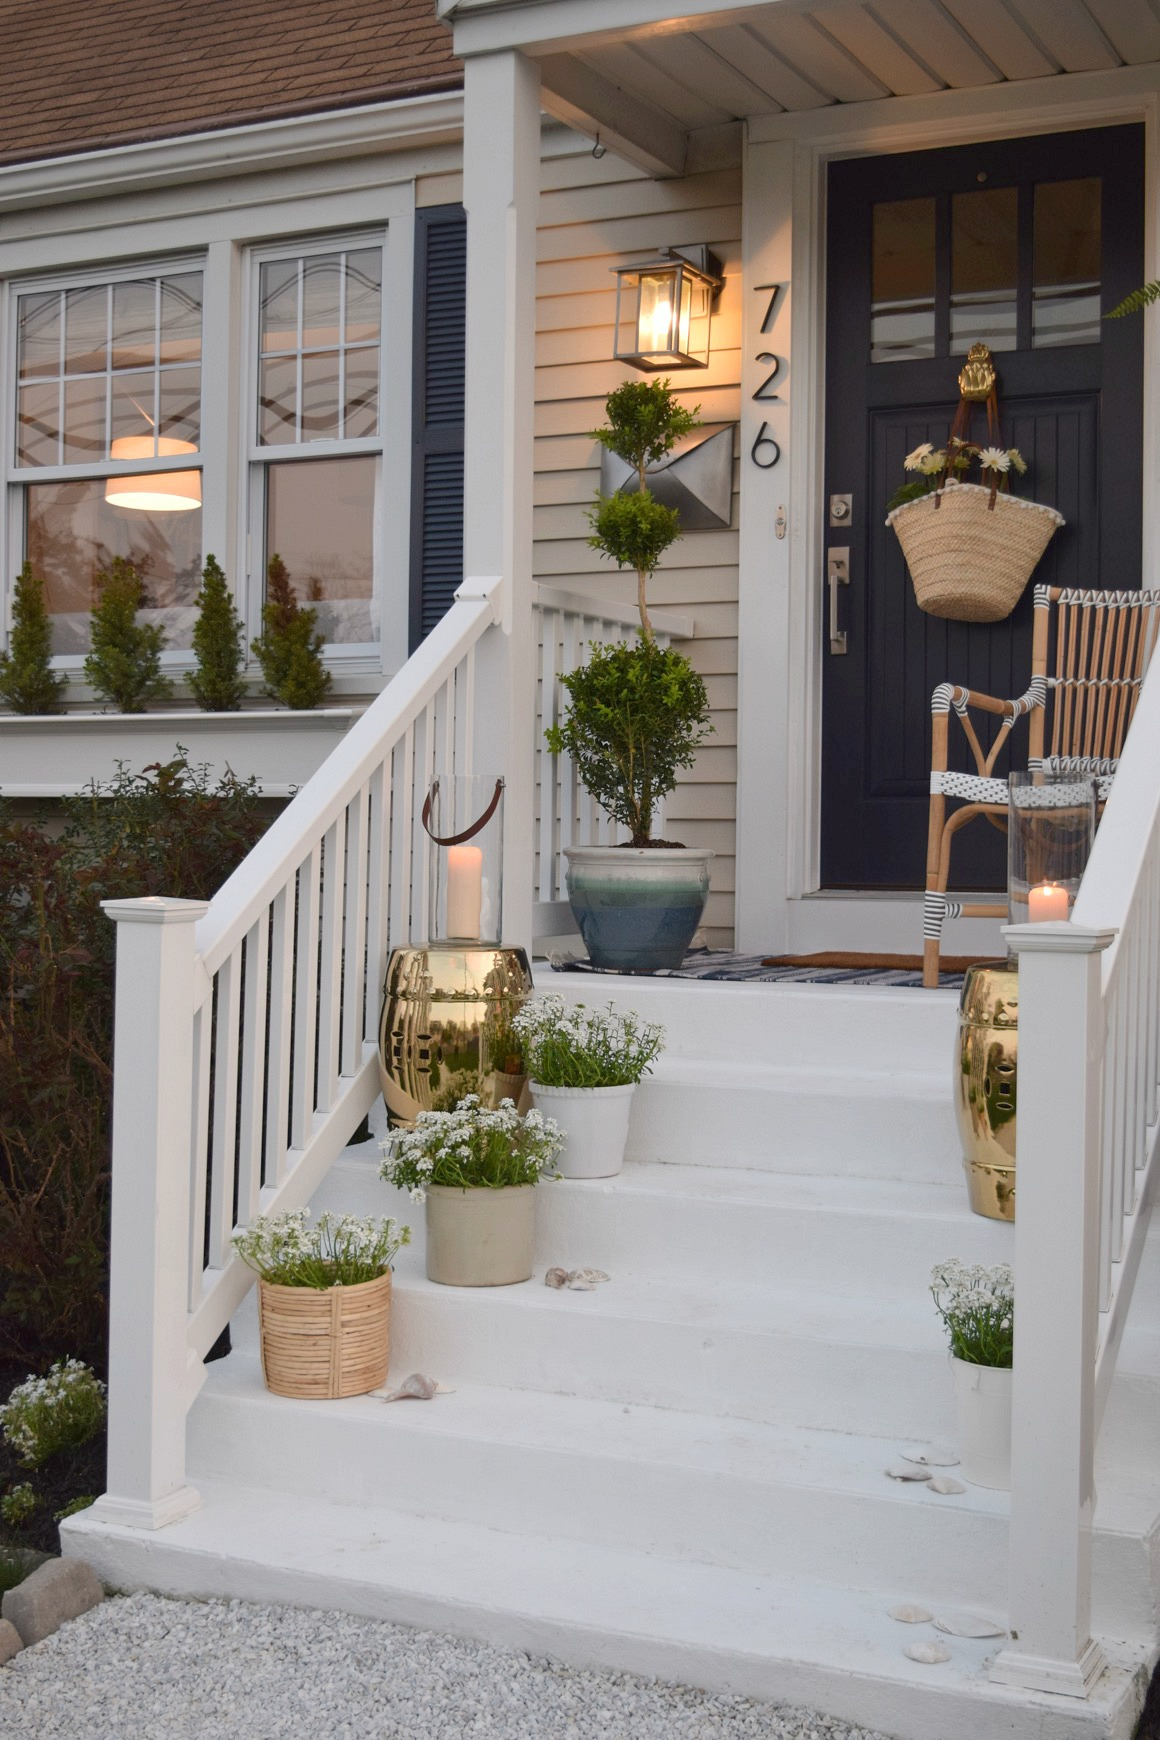 Front Porch Ideas and Designing the Outdoors - Nesting ... on Patio Renovation Ideas id=14430